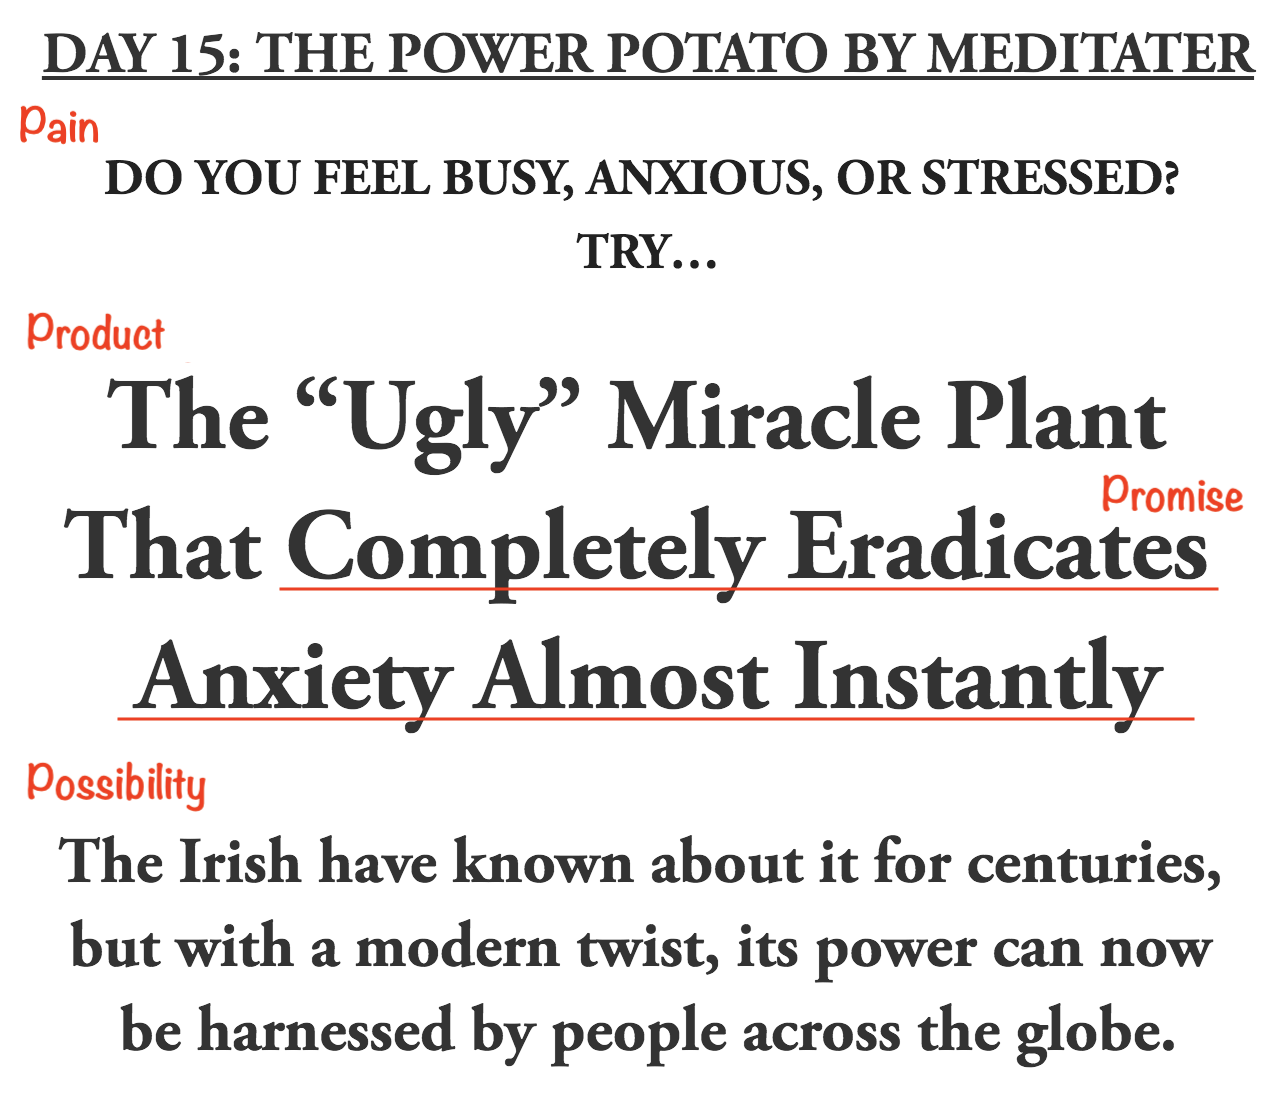 (This is literally about a potato. So, if it works for that, chances are it'll work for your product too.)